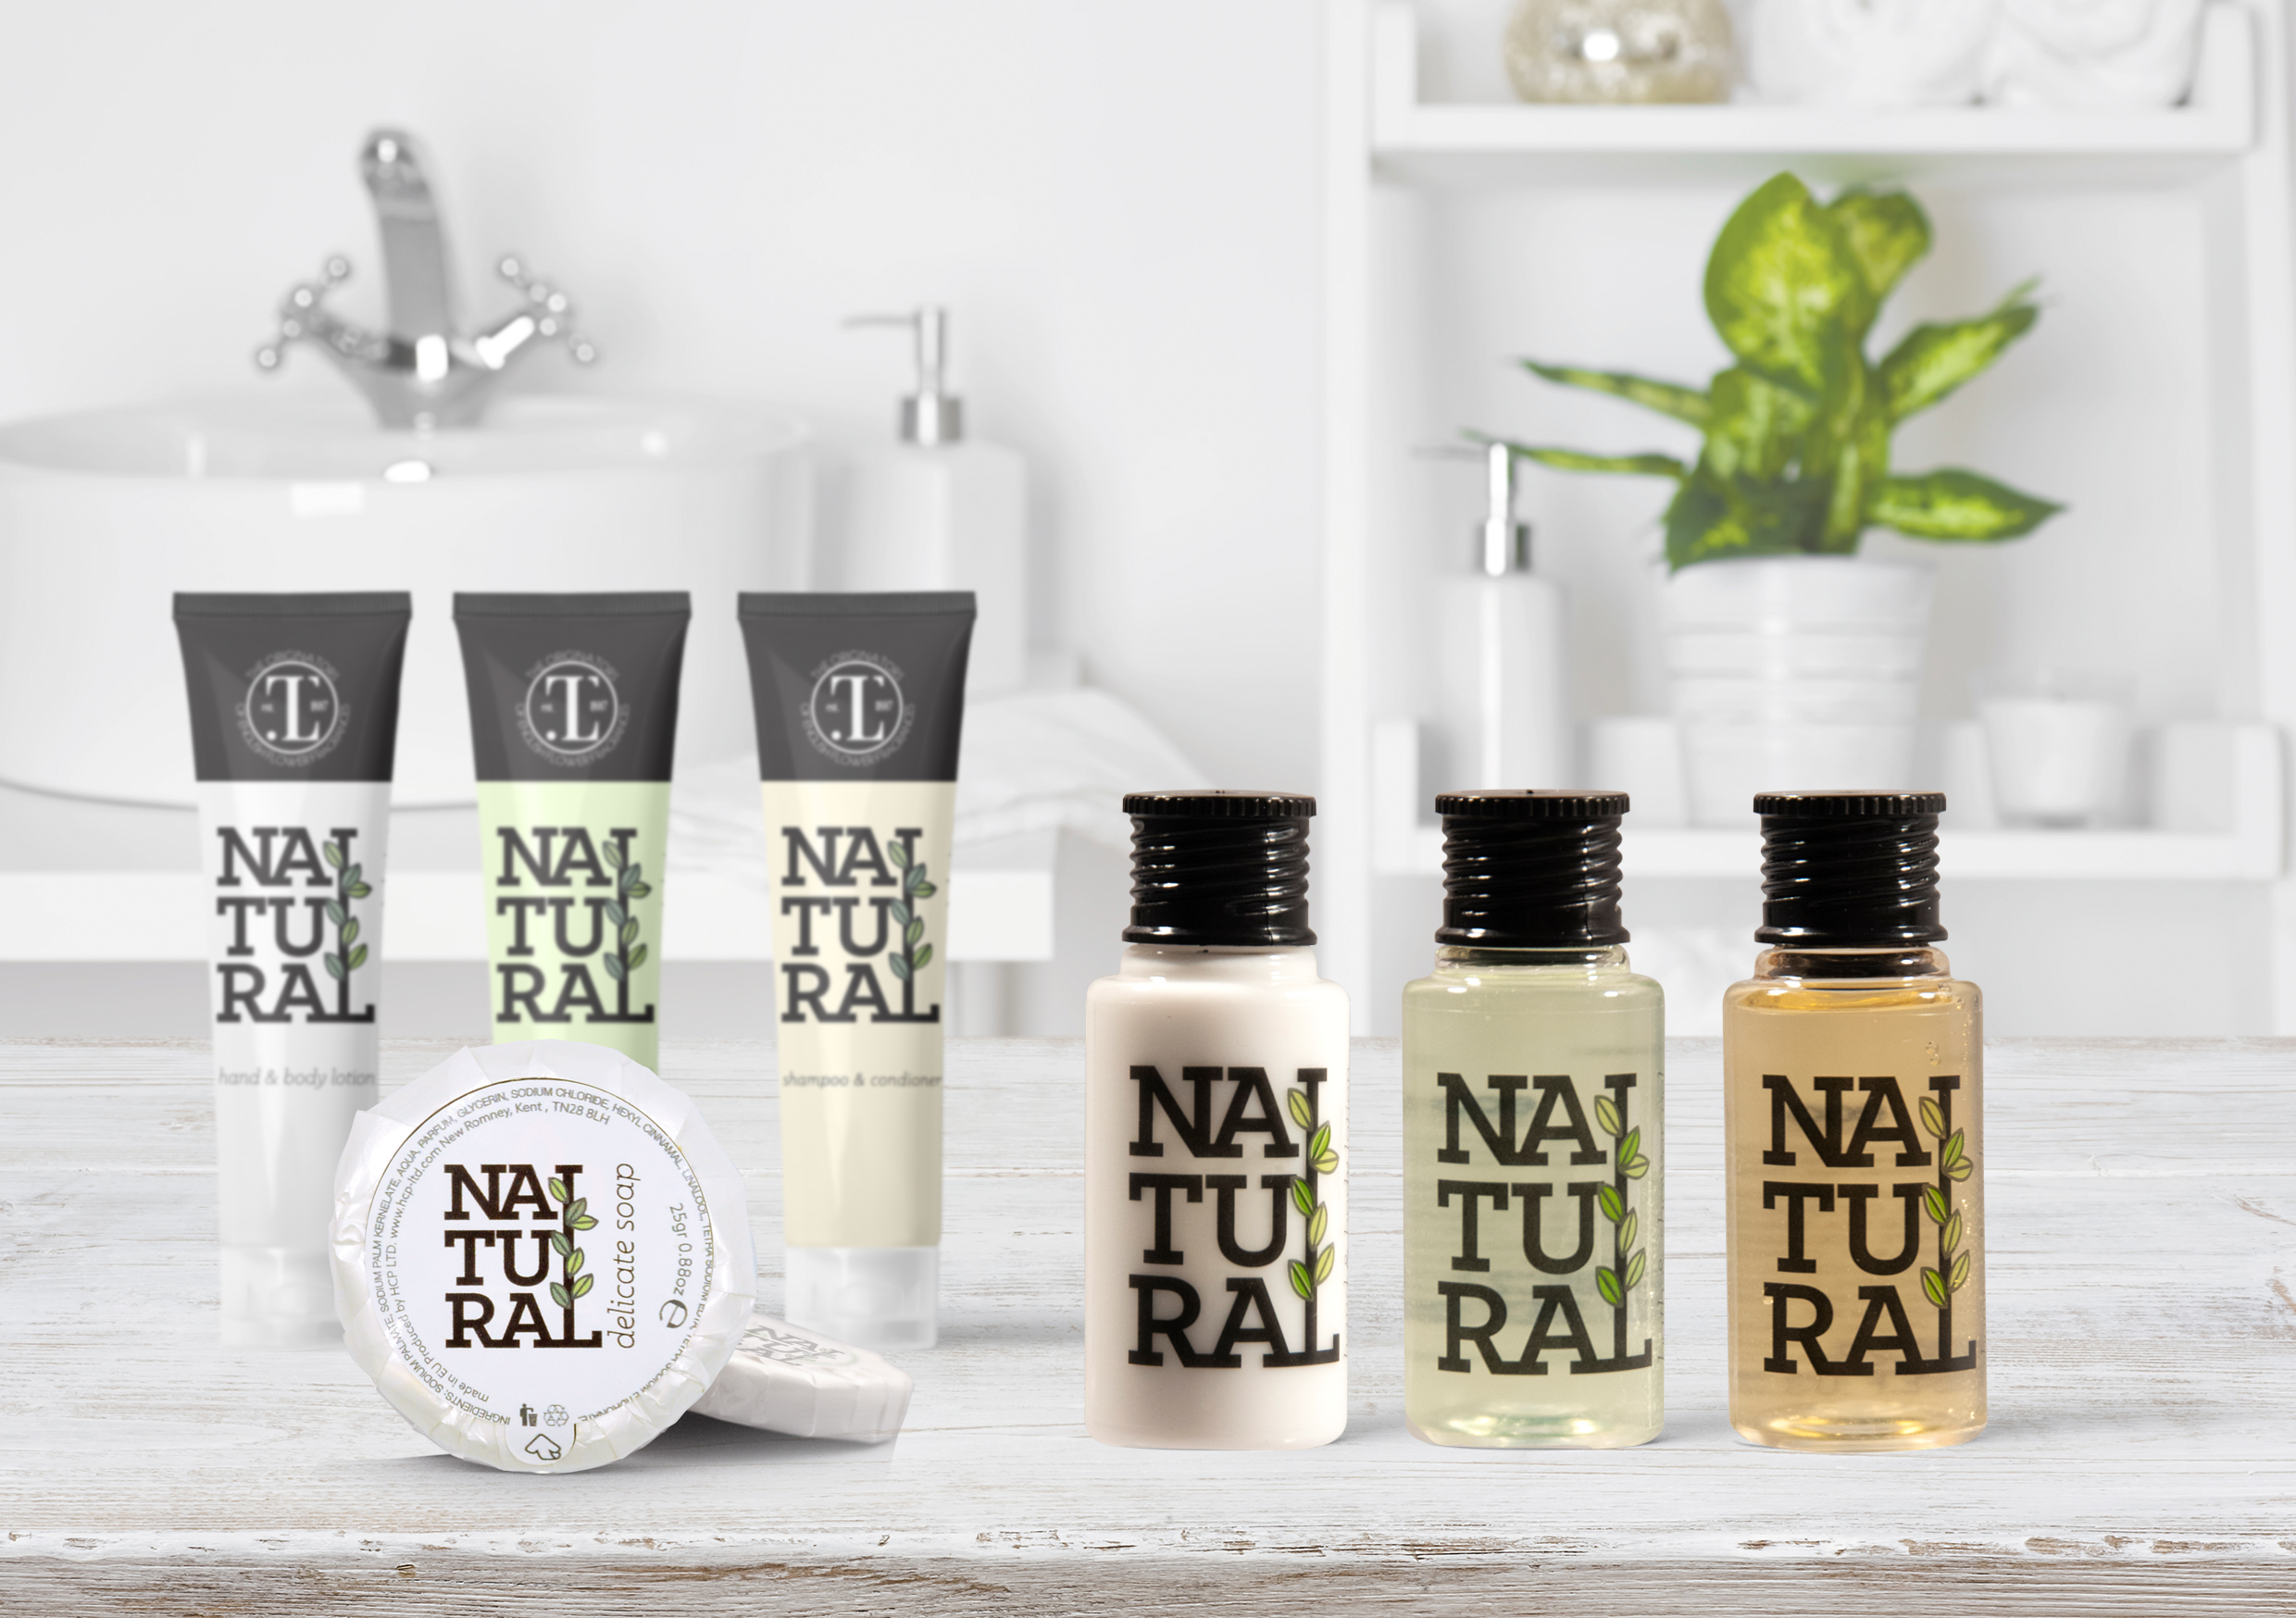 Natural by Taylor of London